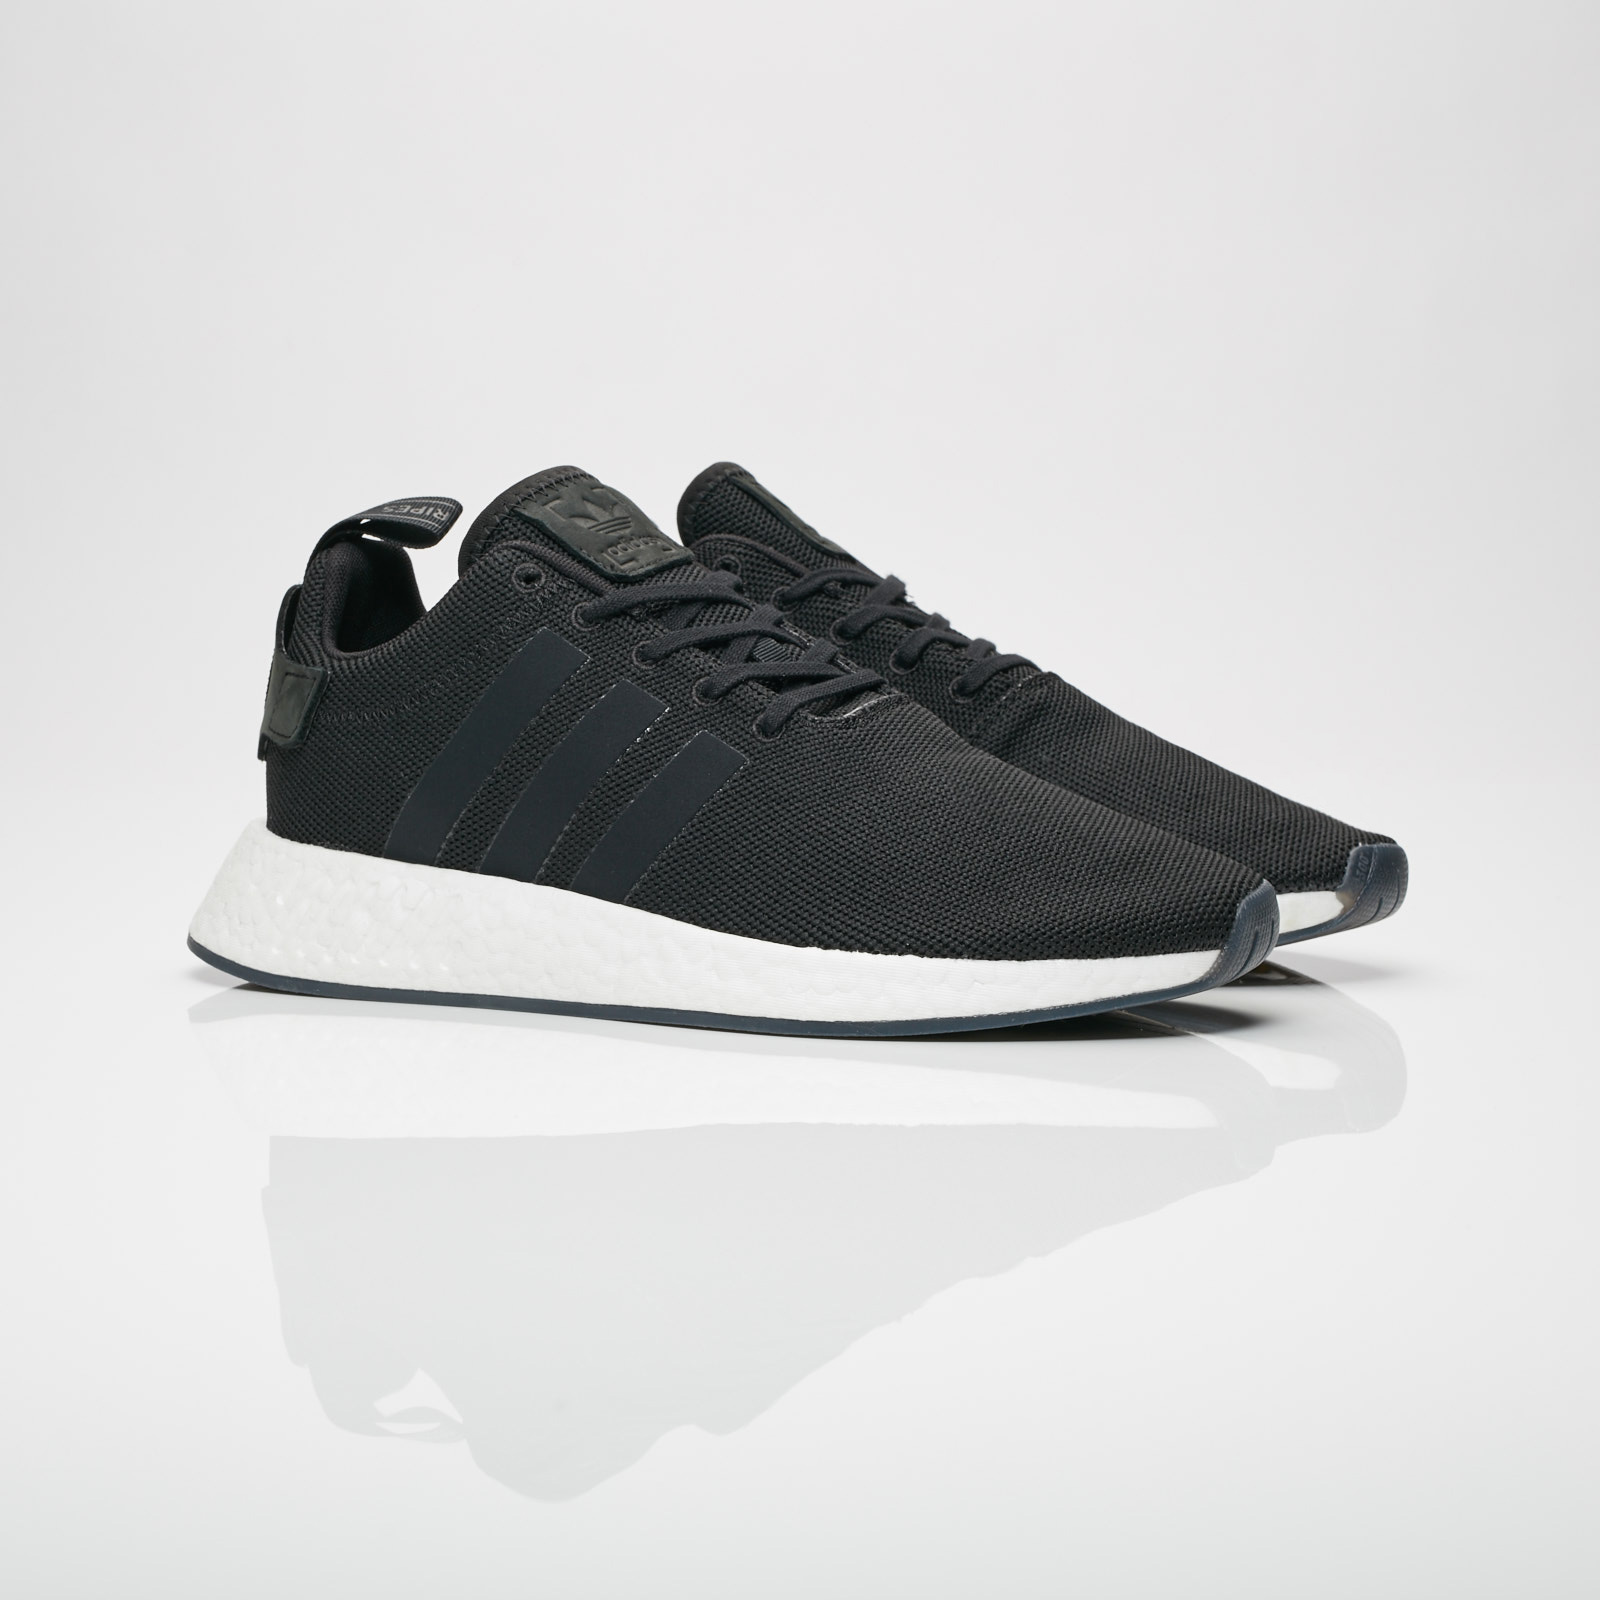 outlet store e7a74 ce260 adidas NMD R2 - Cq2402 - Sneakersnstuff | sneakers ...